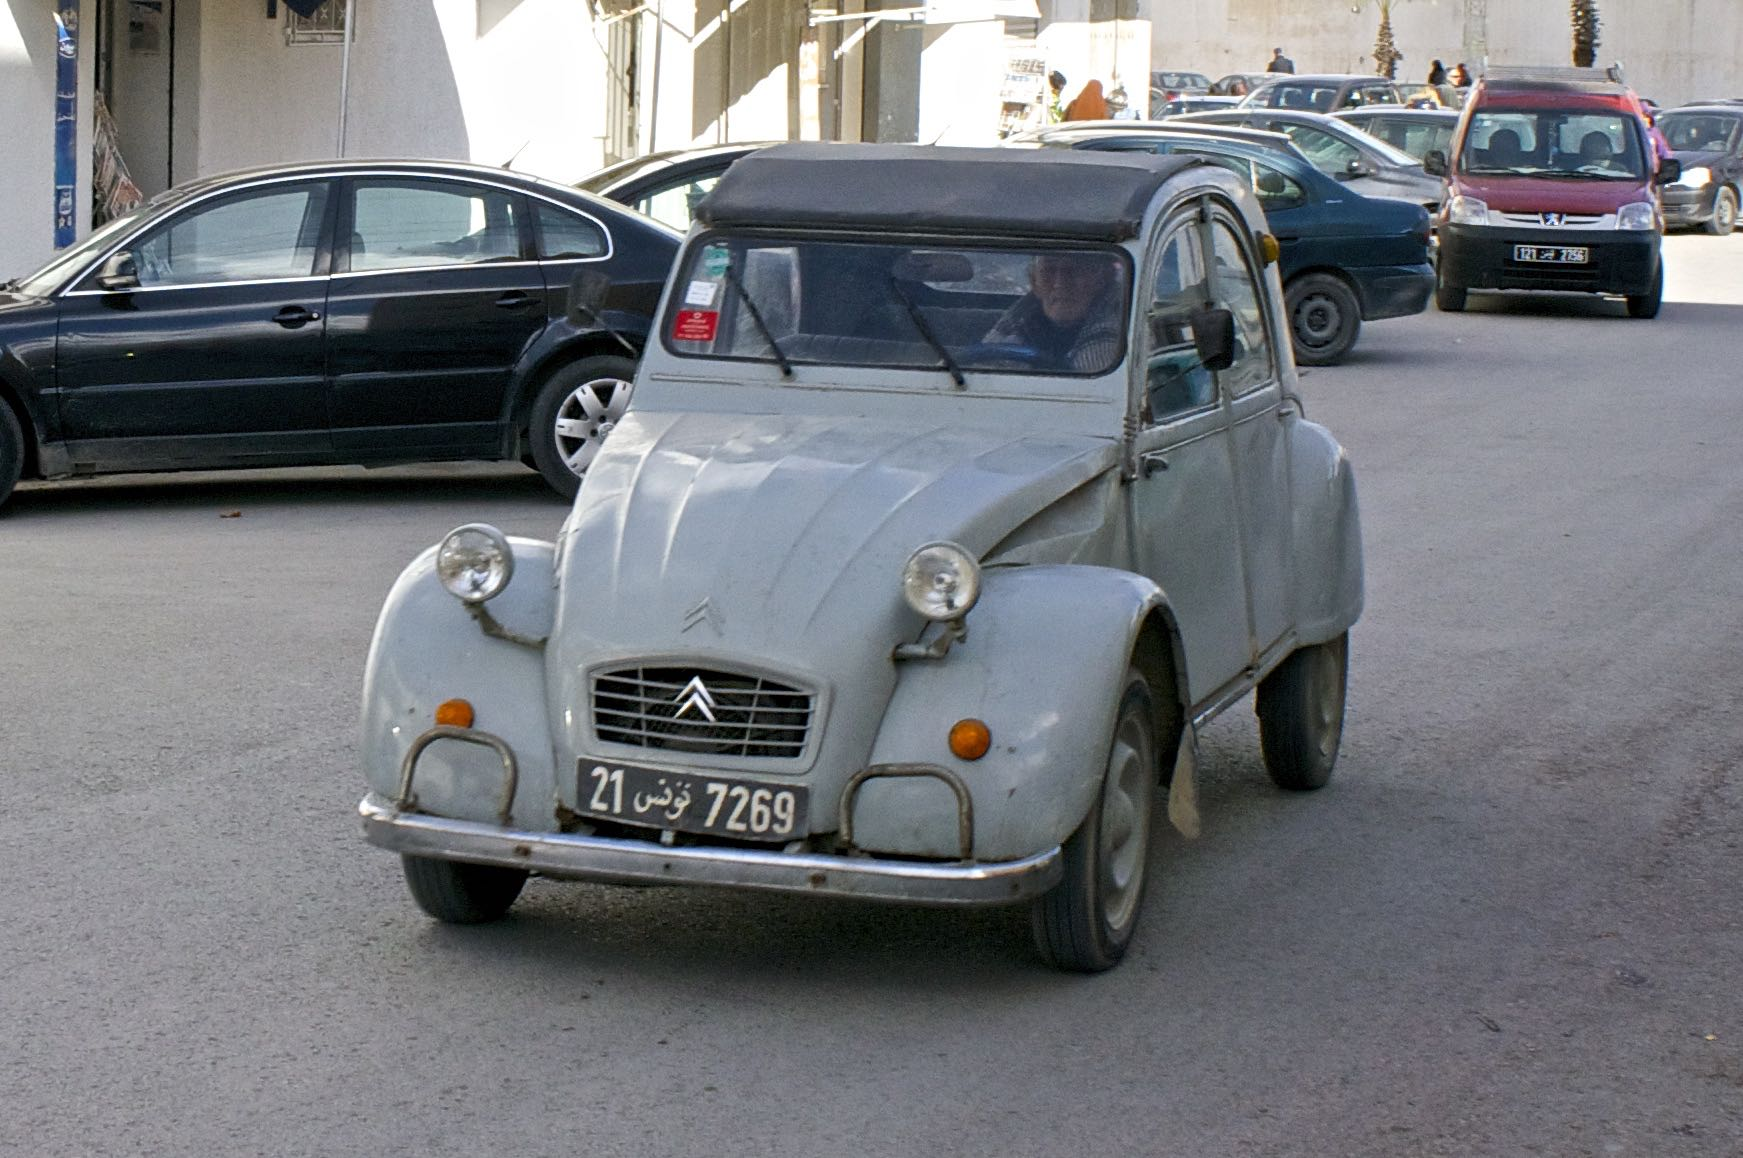 French Car: Old Weird French Cars